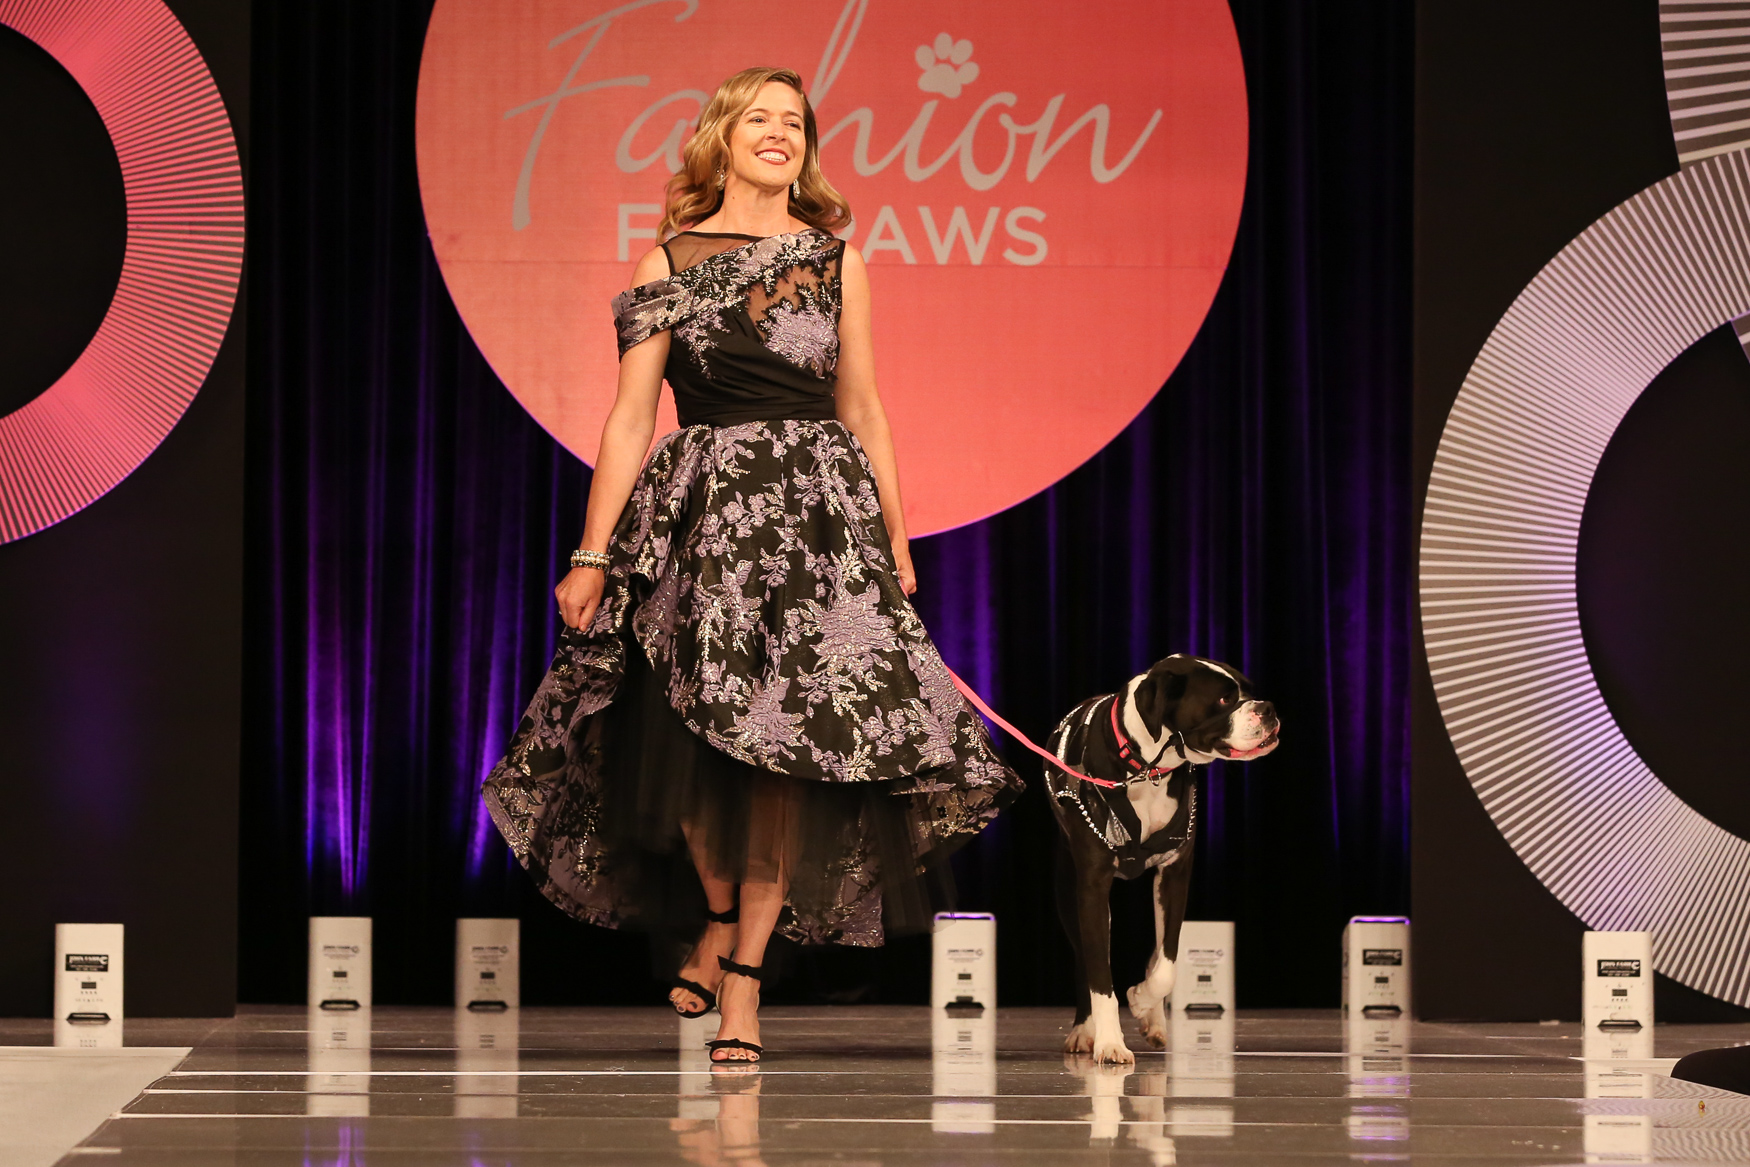 Spotted at Fashion for Paws: The high-low hemline and intricate flowers keep this dress busy, but not overwhelming.{ } (Amanda Andrade-Rhoades/DC Refined)